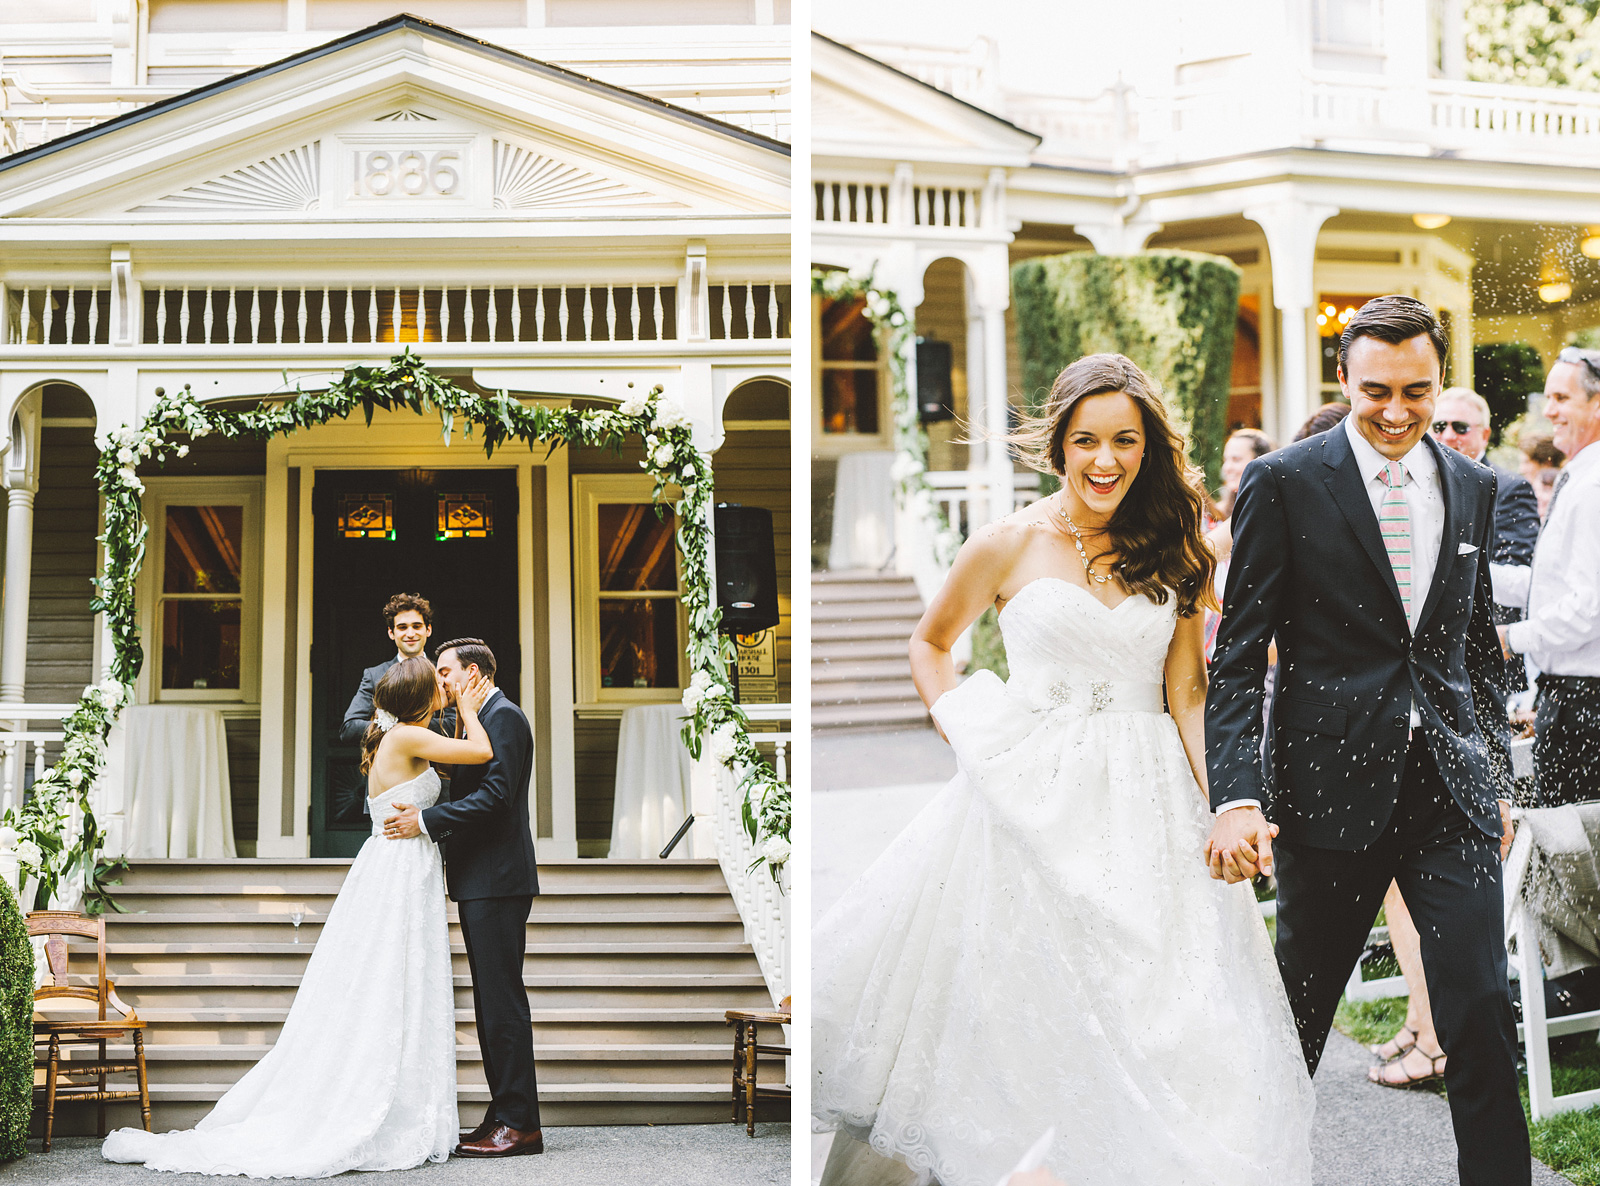 Bride and Groom's first kiss and lavender throw | Fort Vancouver Wedding in Washington